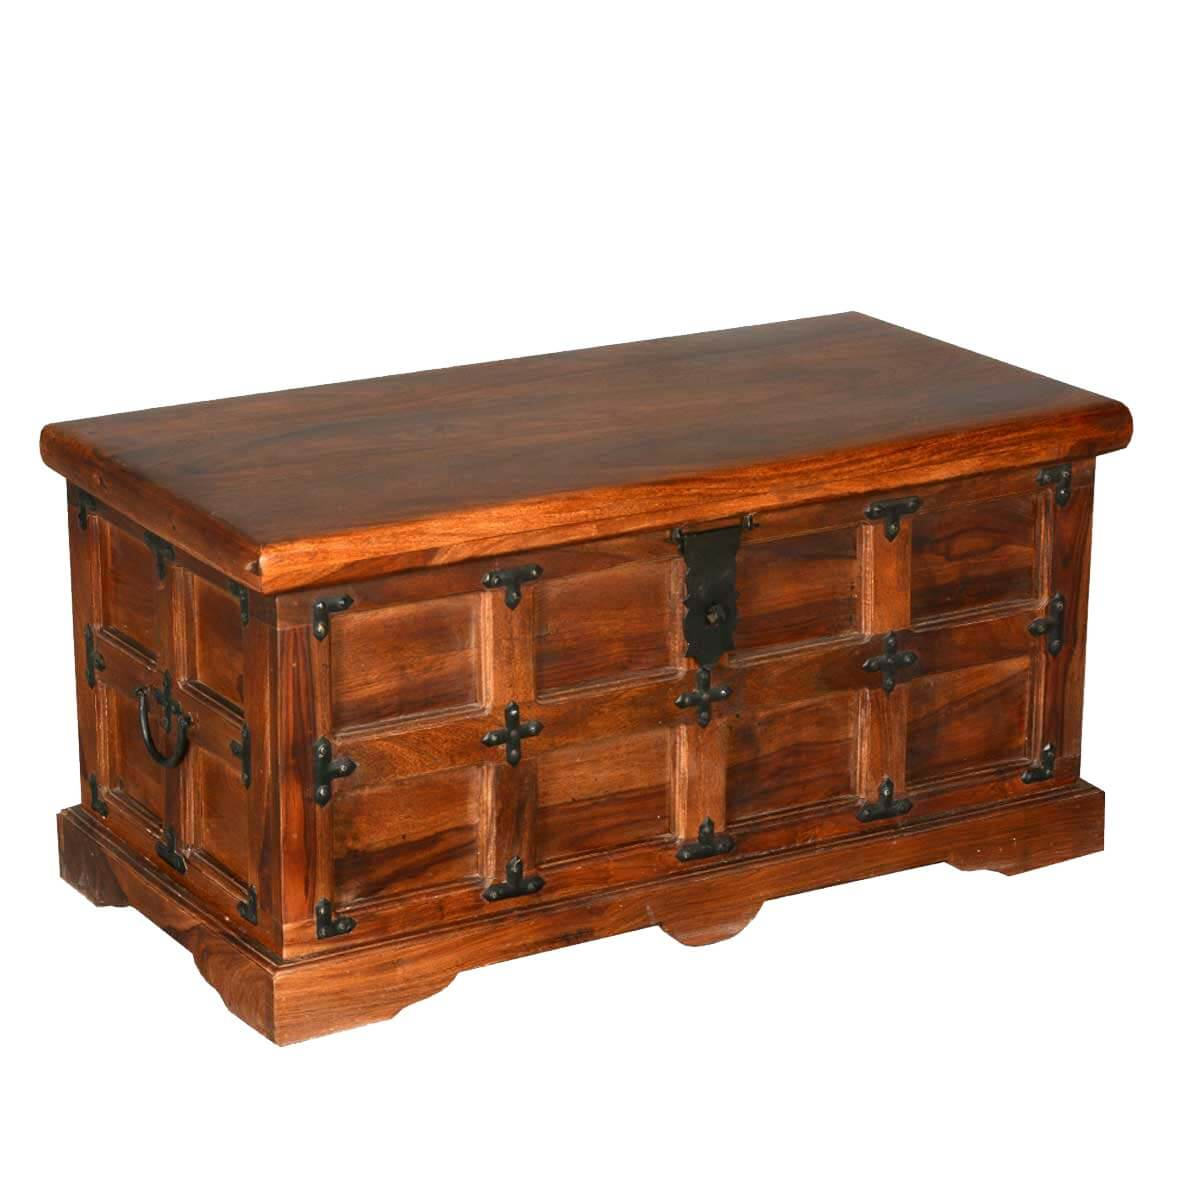 Beaufort Solid Rosewood with Metal Accents Coffee Table Storage Chest